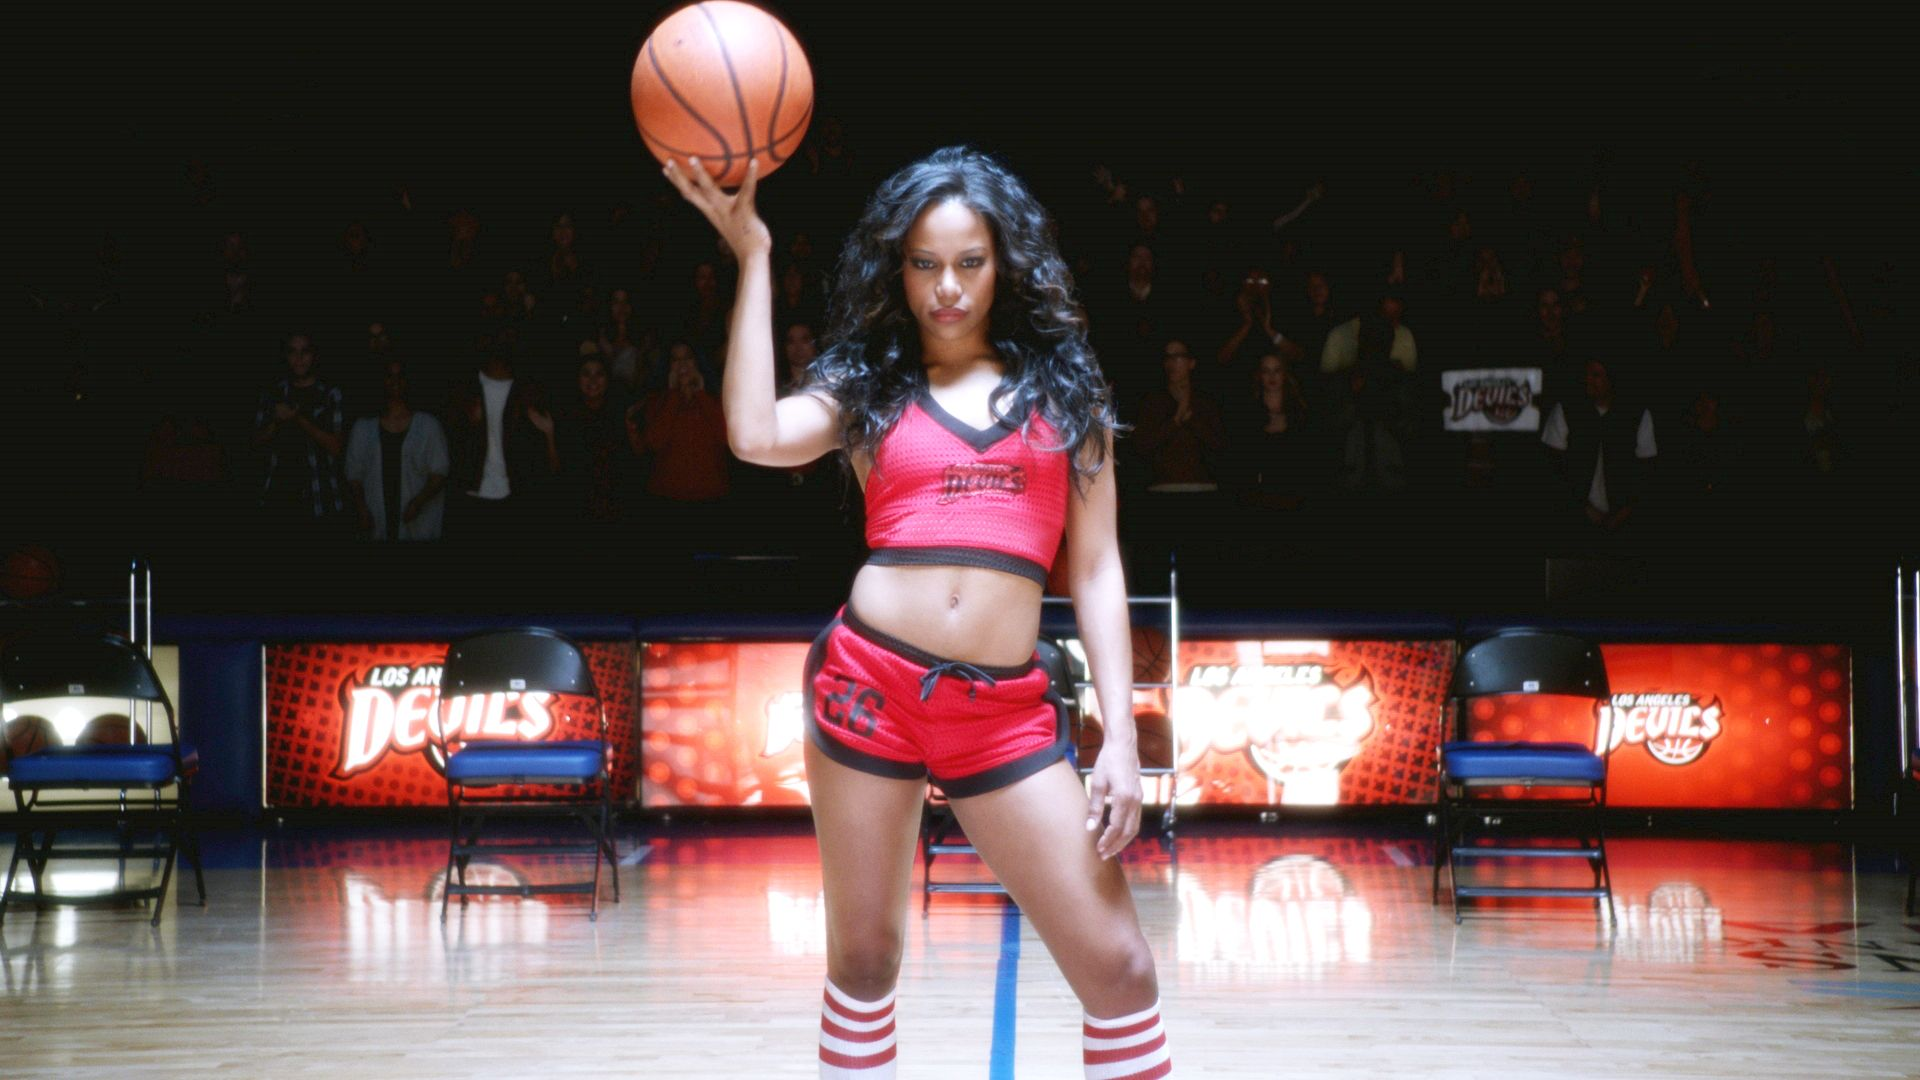 The Devil Girls Perform At The Opening Game Hit The Floor Video